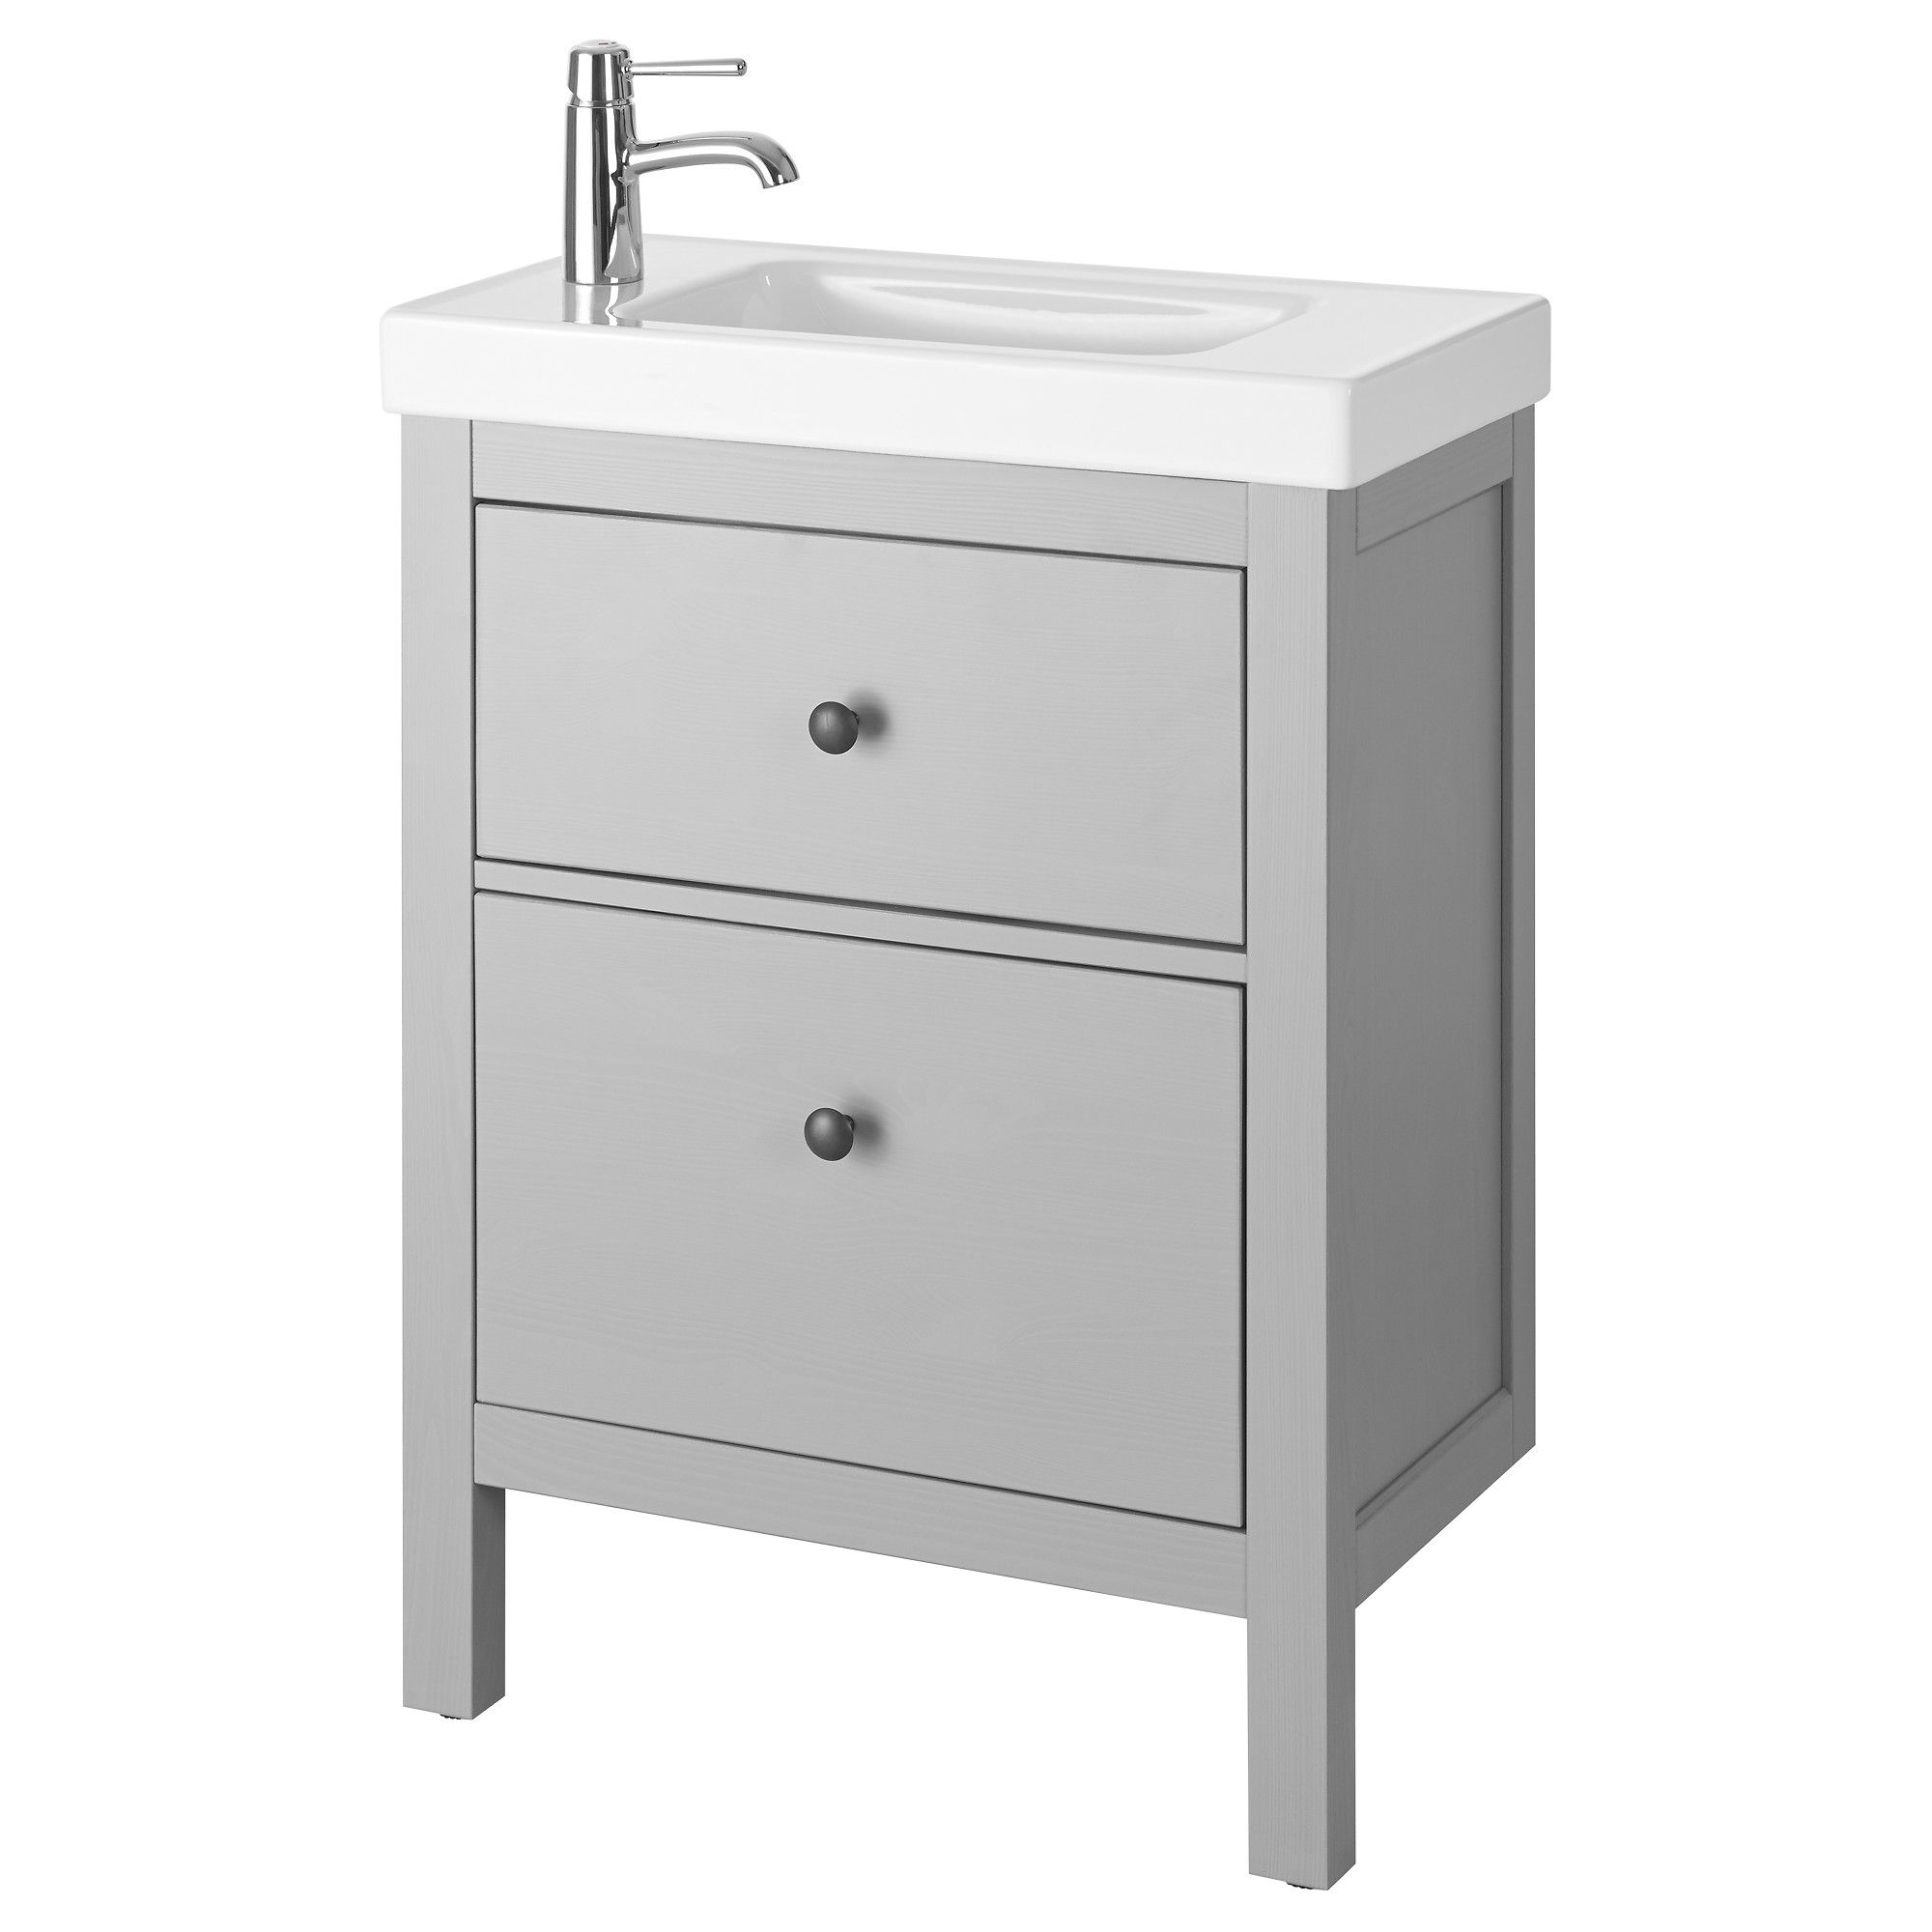 Ikea Us Furniture And Home Furnishings Ikea Bathroom Vanity Bathroom Sink Cabinets Ikea Vanity